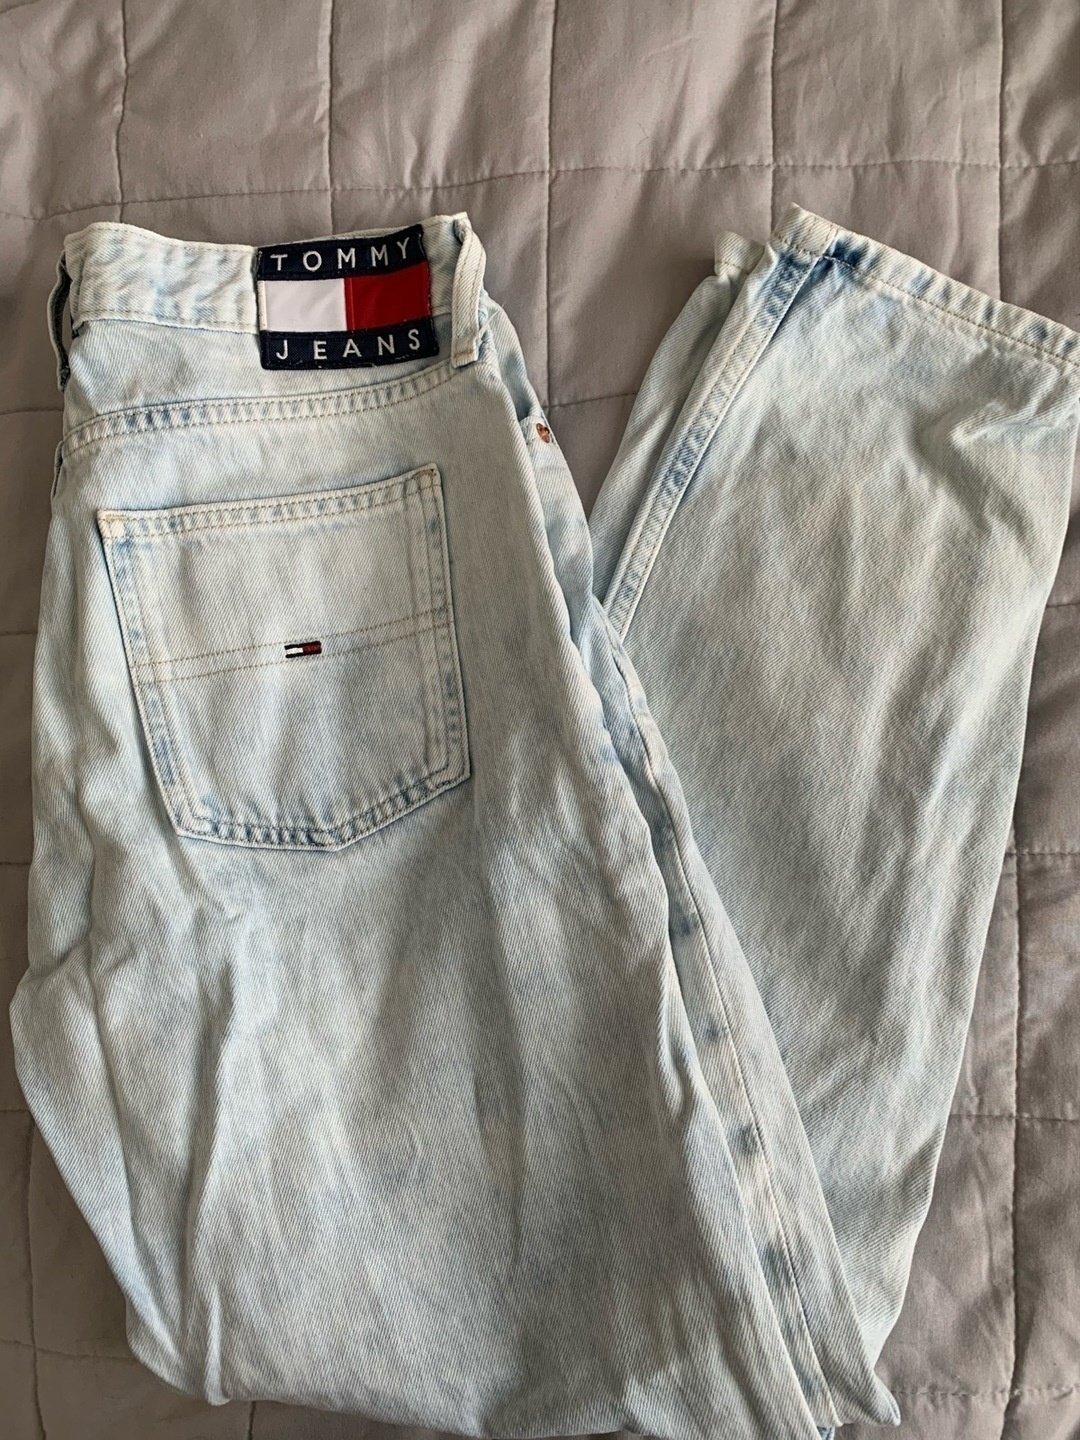 Women's trousers & jeans - TOMMY JEANS photo 1